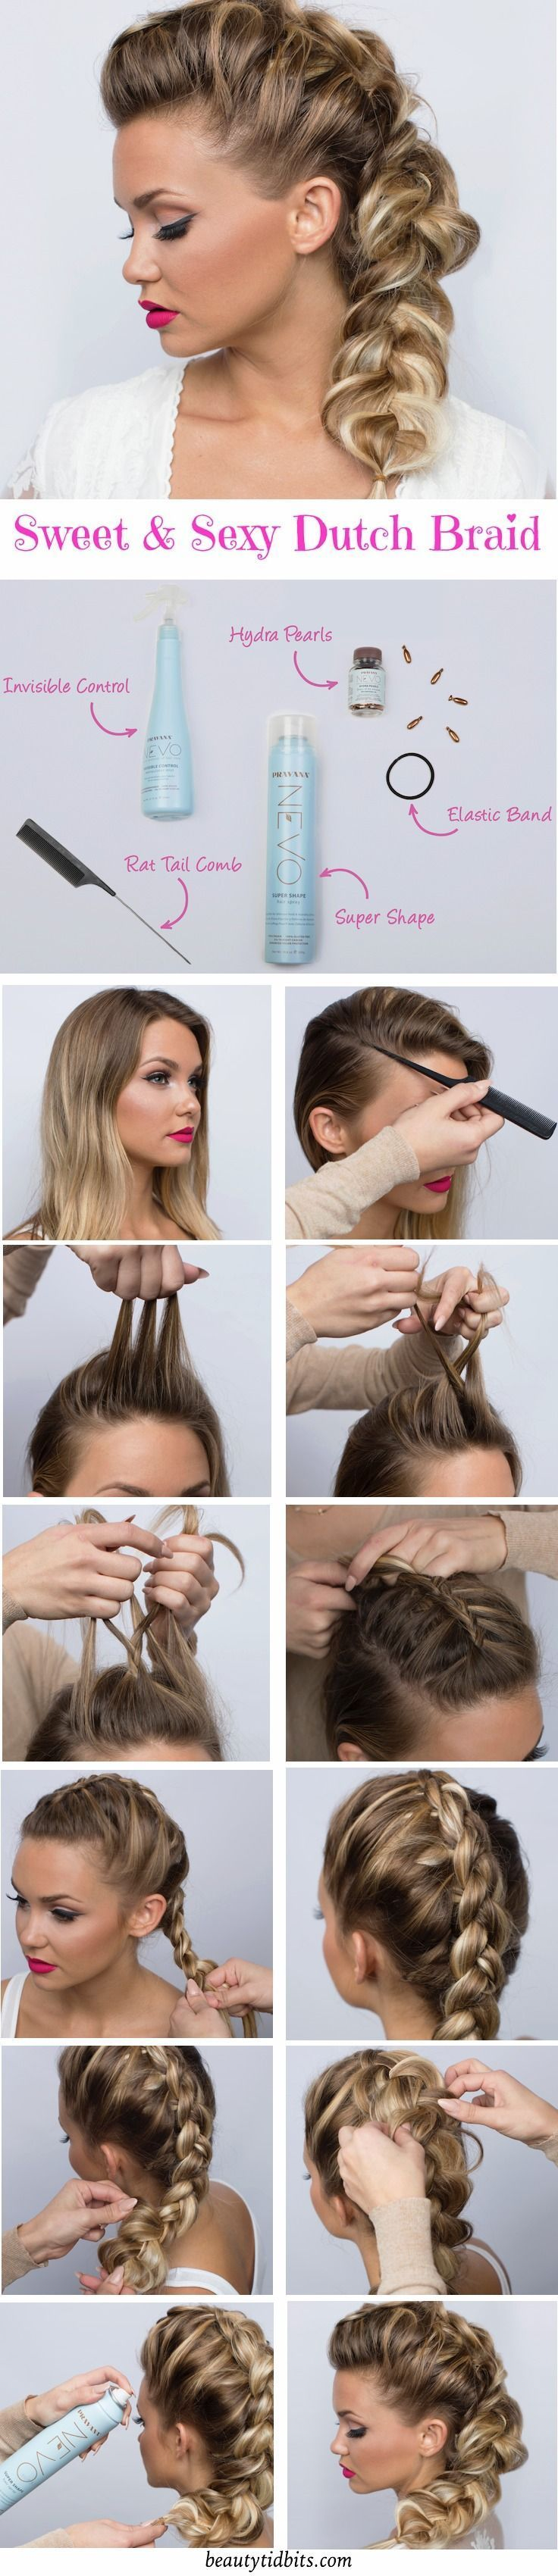 Trendy HairStyles Ideas : Looking for a cute braided hairstyle for ...